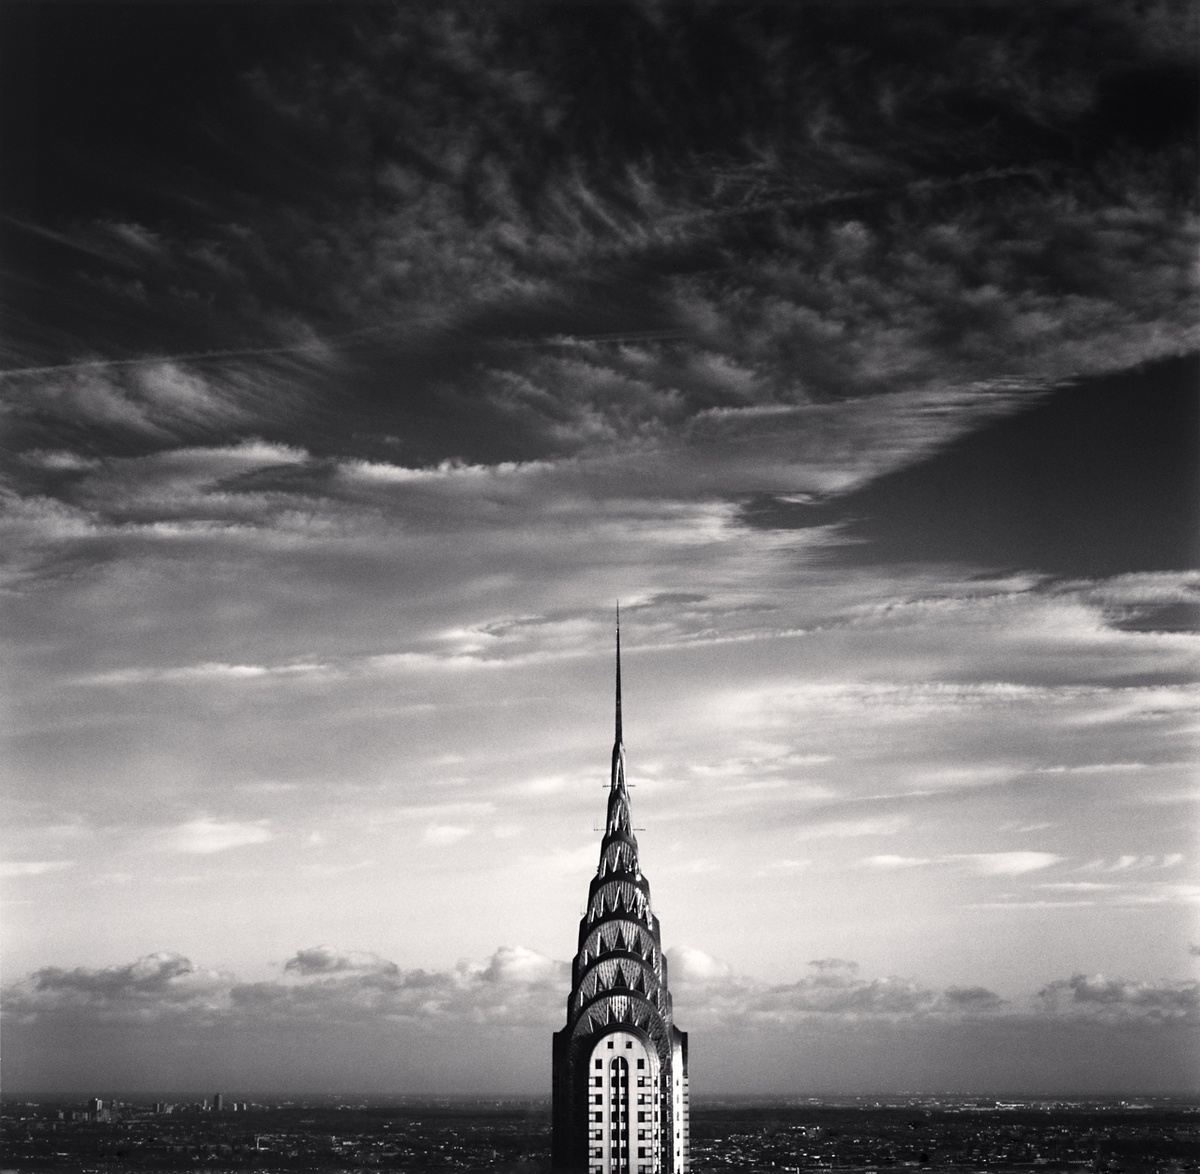 Michael Kenna Chrysler Building, Study 3, New York, New York, USA 2006 Sepia Toned Silver Gelatin Print From An Edition Of 45 8 x 8 Inches